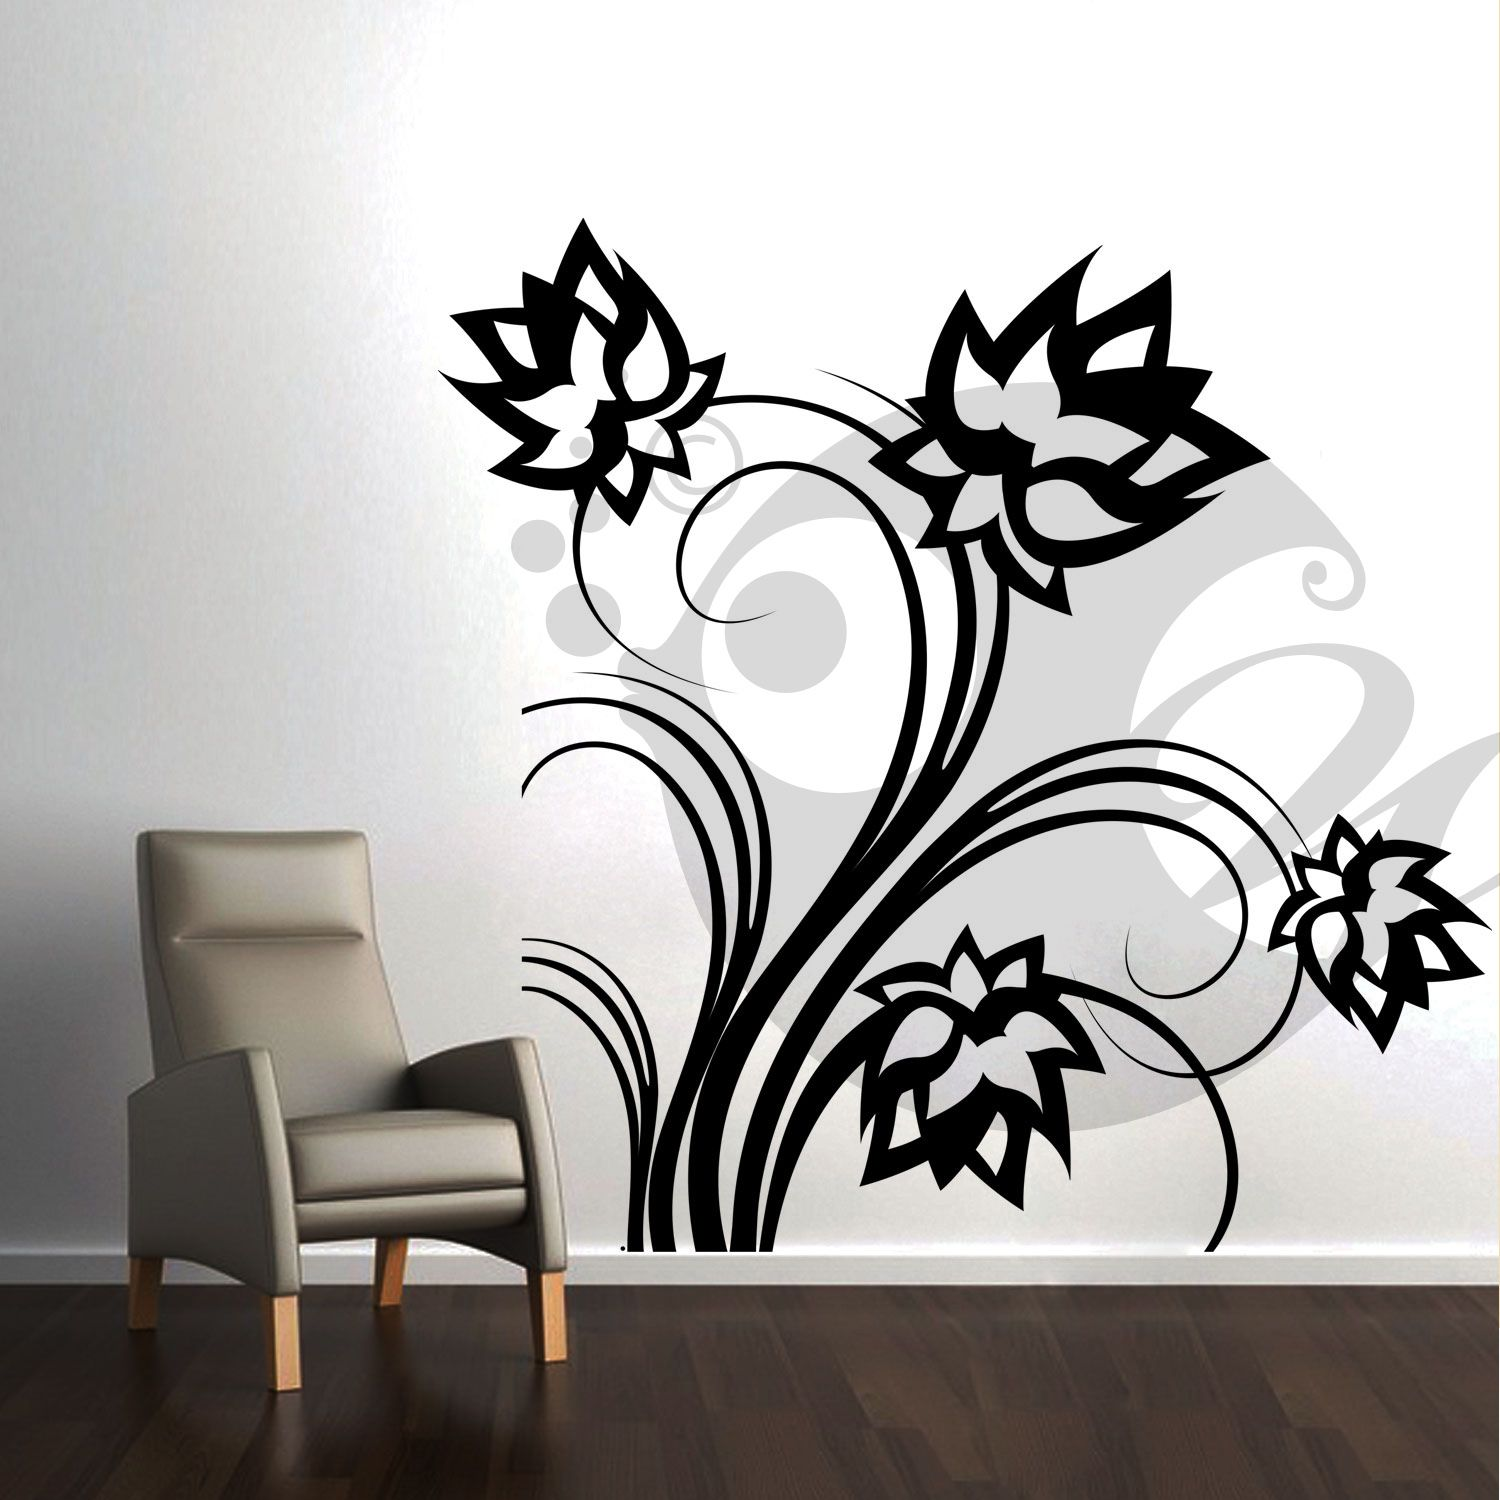 With this Lotus Flowers Wall Sticker Decal you can decorate your walls in one of the most modern and elegant ways